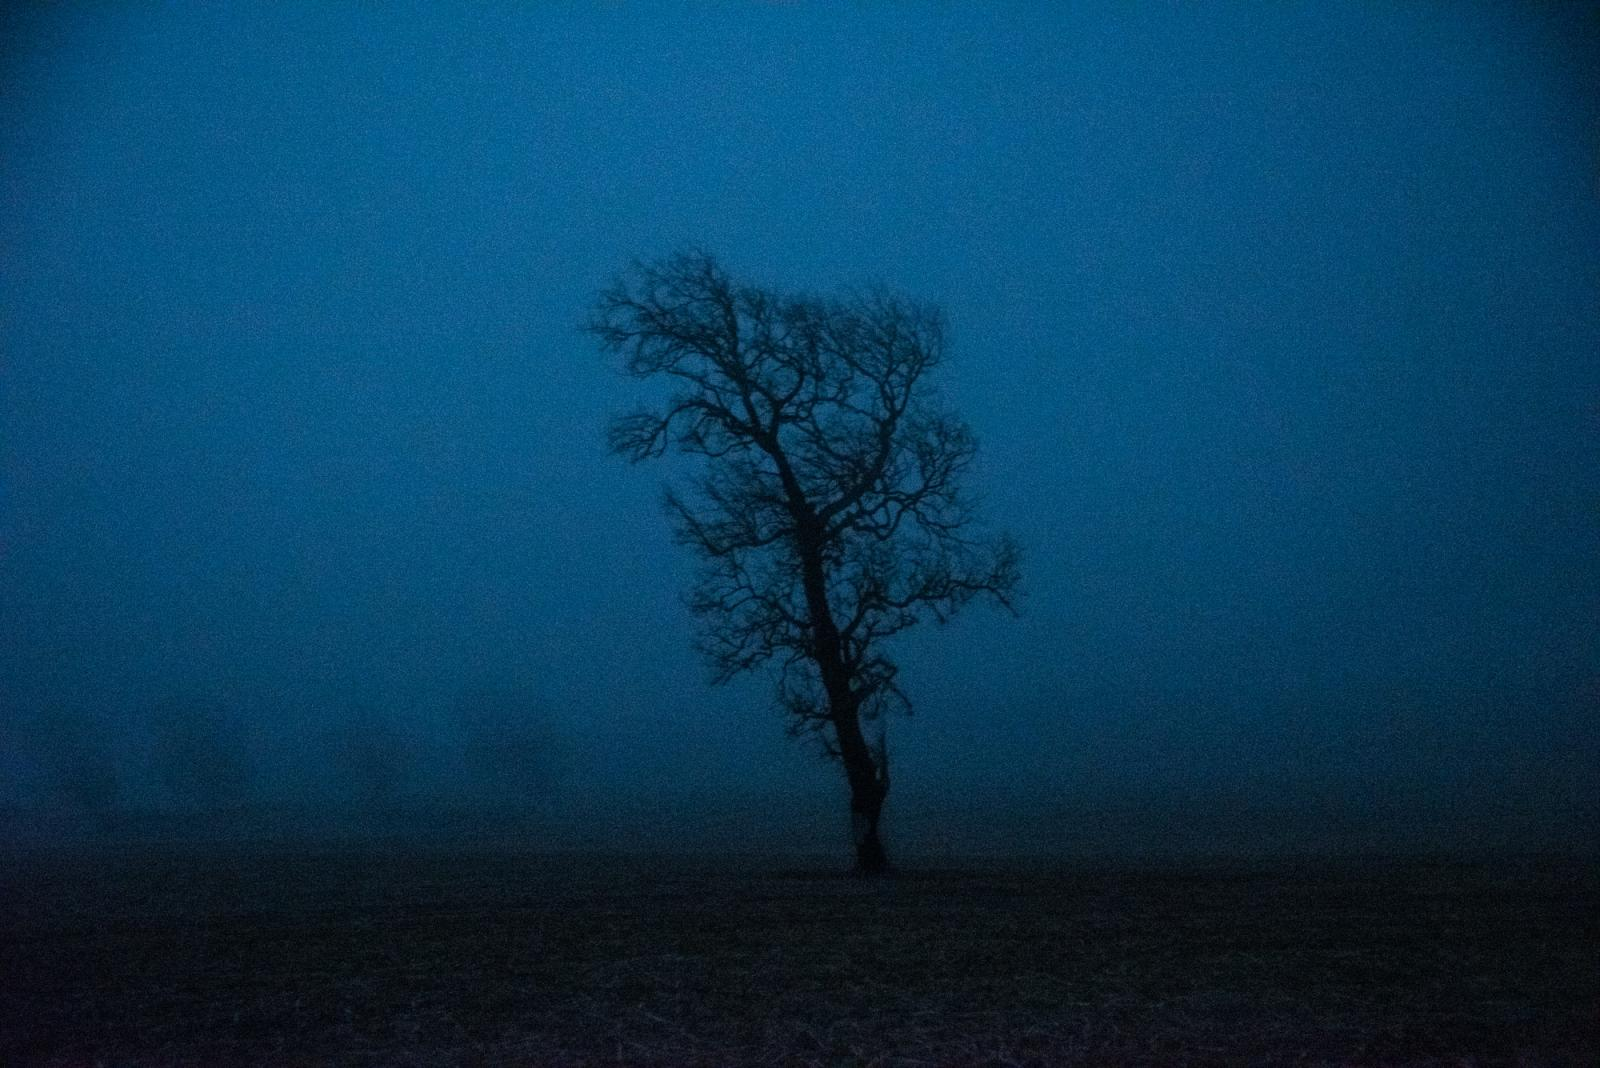 """A tree stands alone in a field near Collipulli, Araucanía region. This area has been labeled as """"red zone"""" due to the ongoing land conflict between the state, landowners and Mapuche communities. Collipulli region, Araucanía. Chile. April 18th, 2019."""